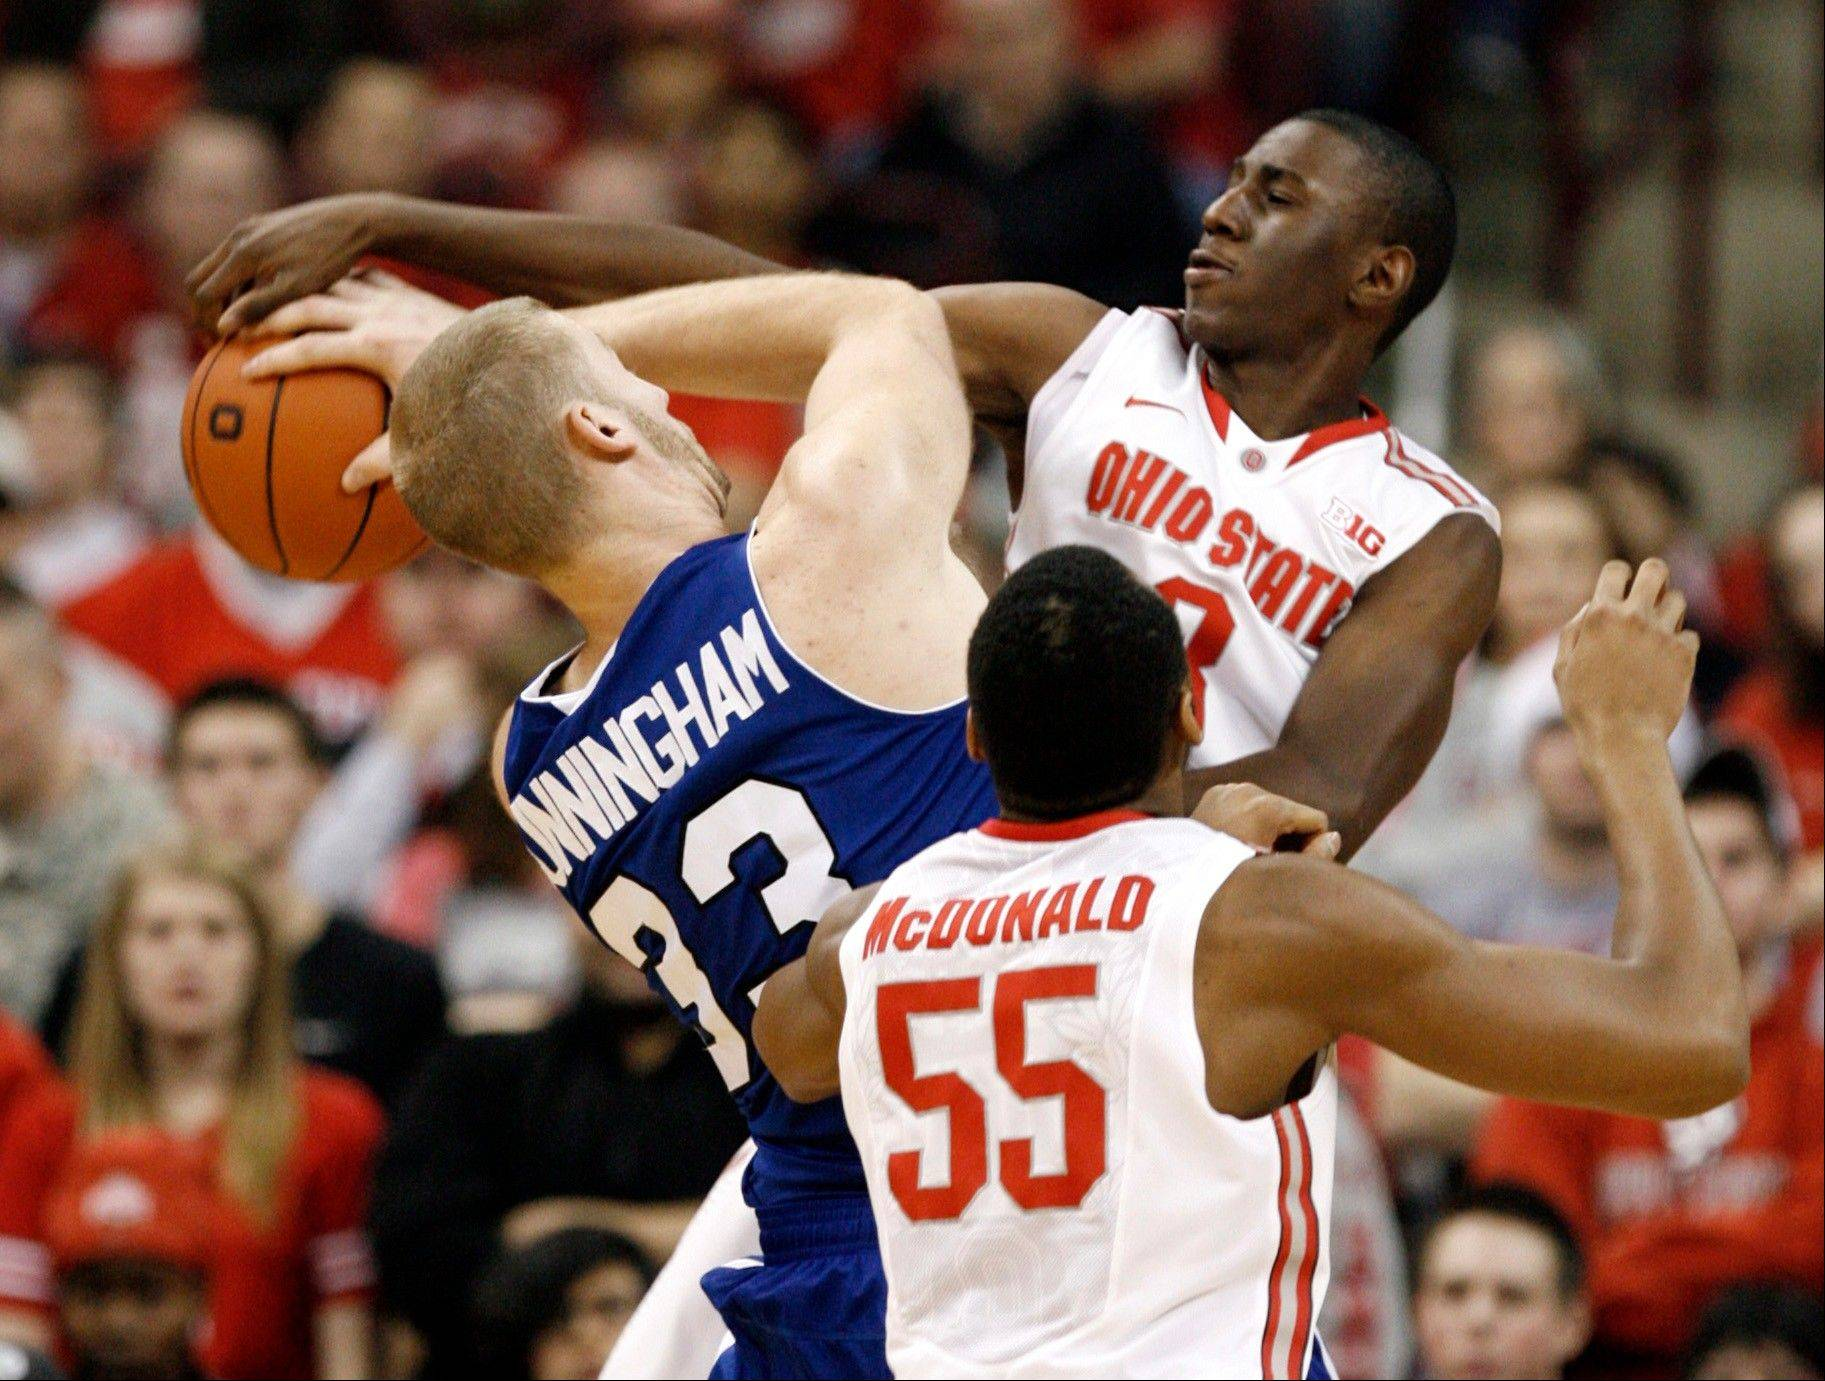 Ohio State�s Shannon Scott, right, fouls UNC-Asheville�s D.J. Cunningham, left, as Ohio State�s Trey McDonald looks on Saturday during the second half in Columbus, Ohio. Ohio State won 90-72.